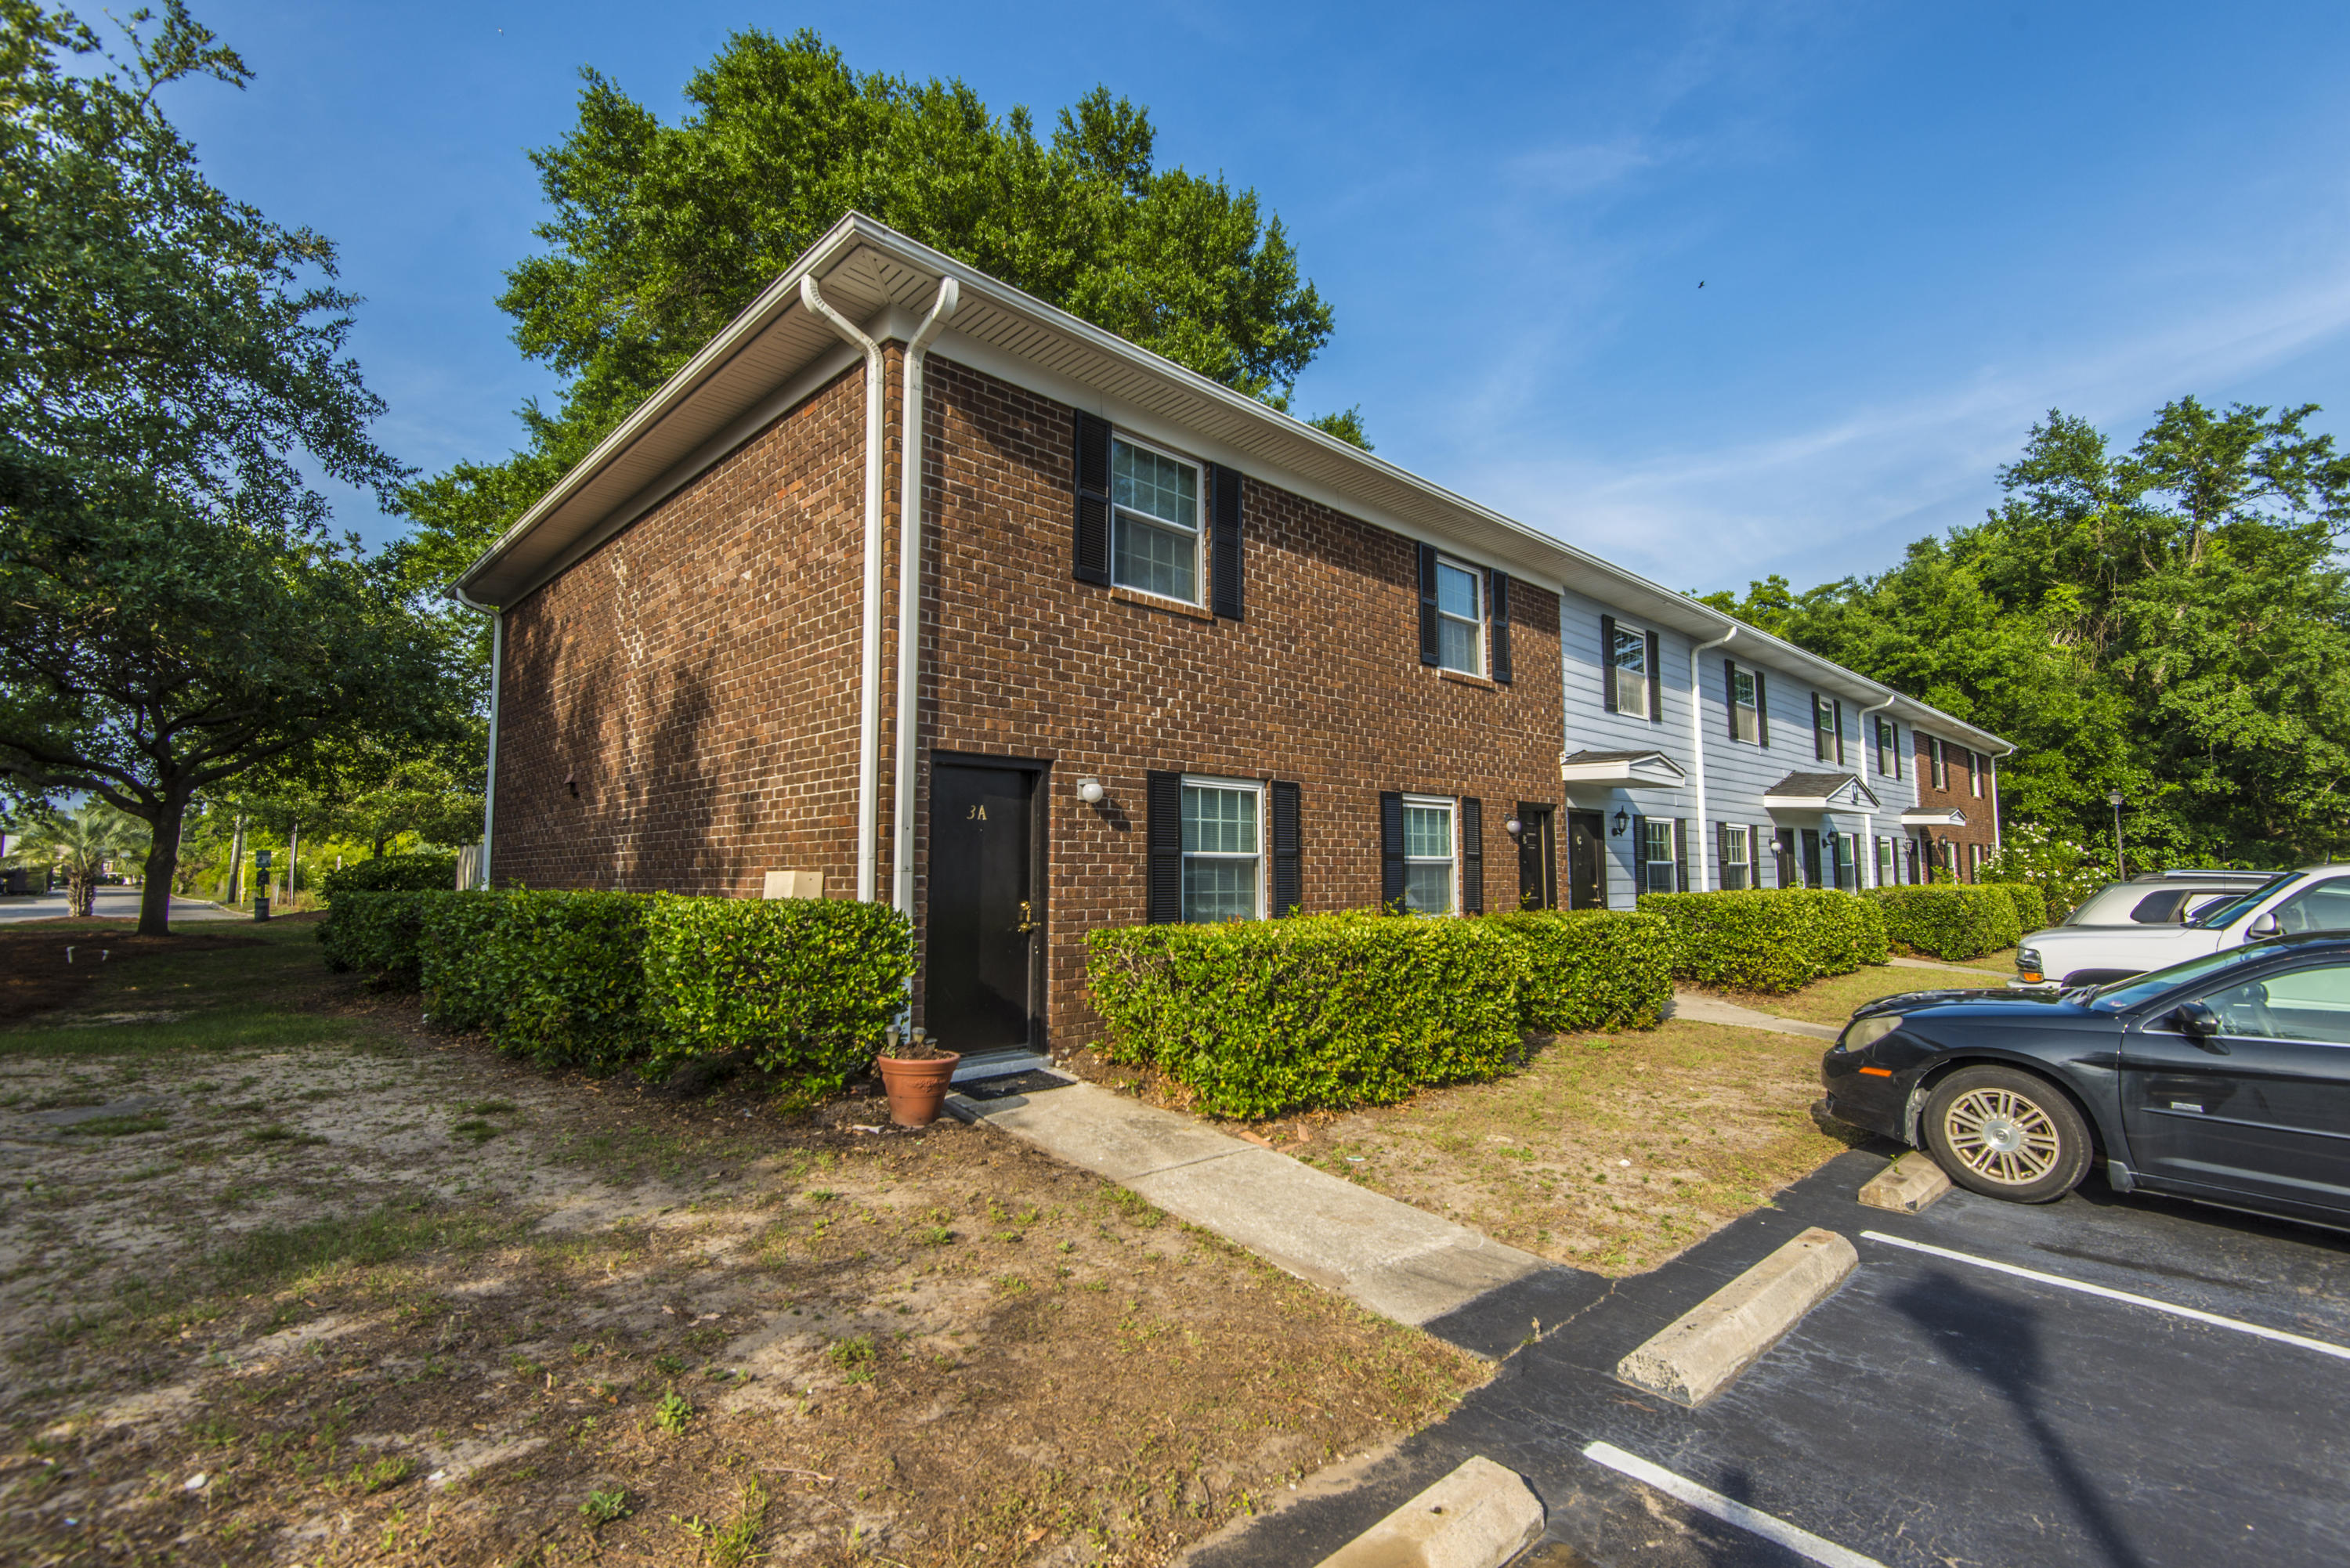 Rivers Point Row Homes For Sale - 21 Rivers Point Row, Charleston, SC - 30